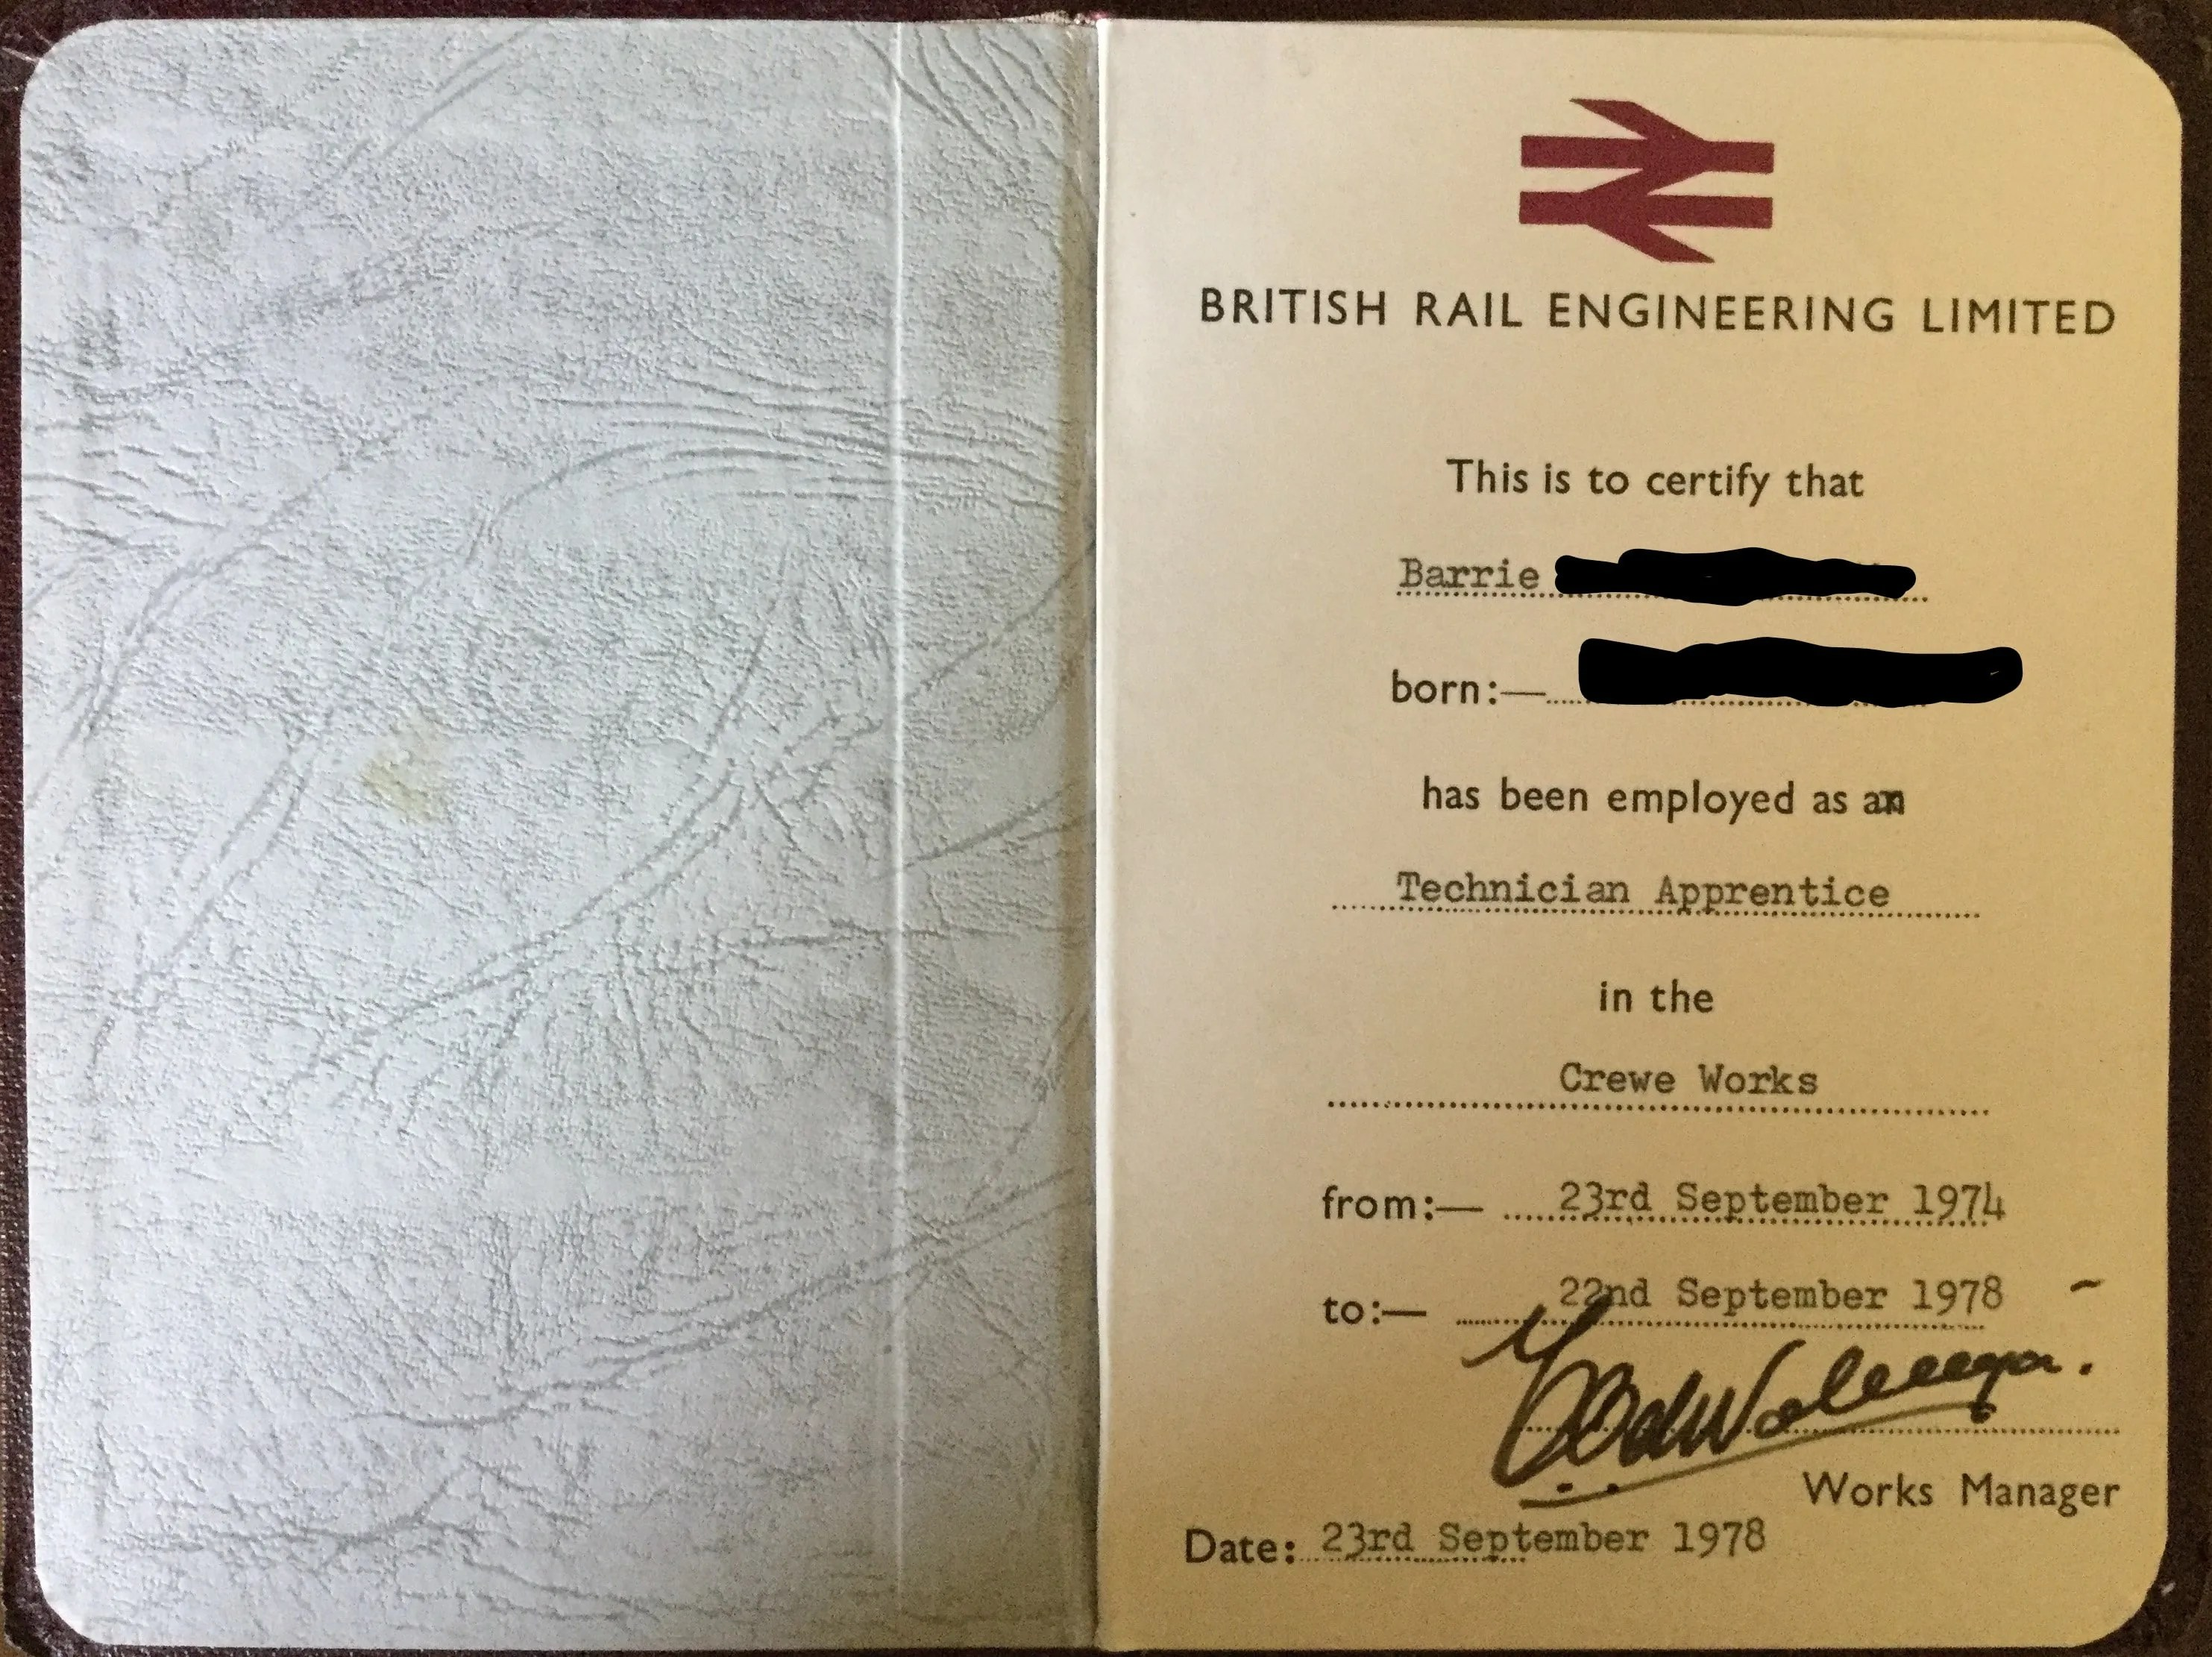 British Railways record of apprenticeship at Crewe Works